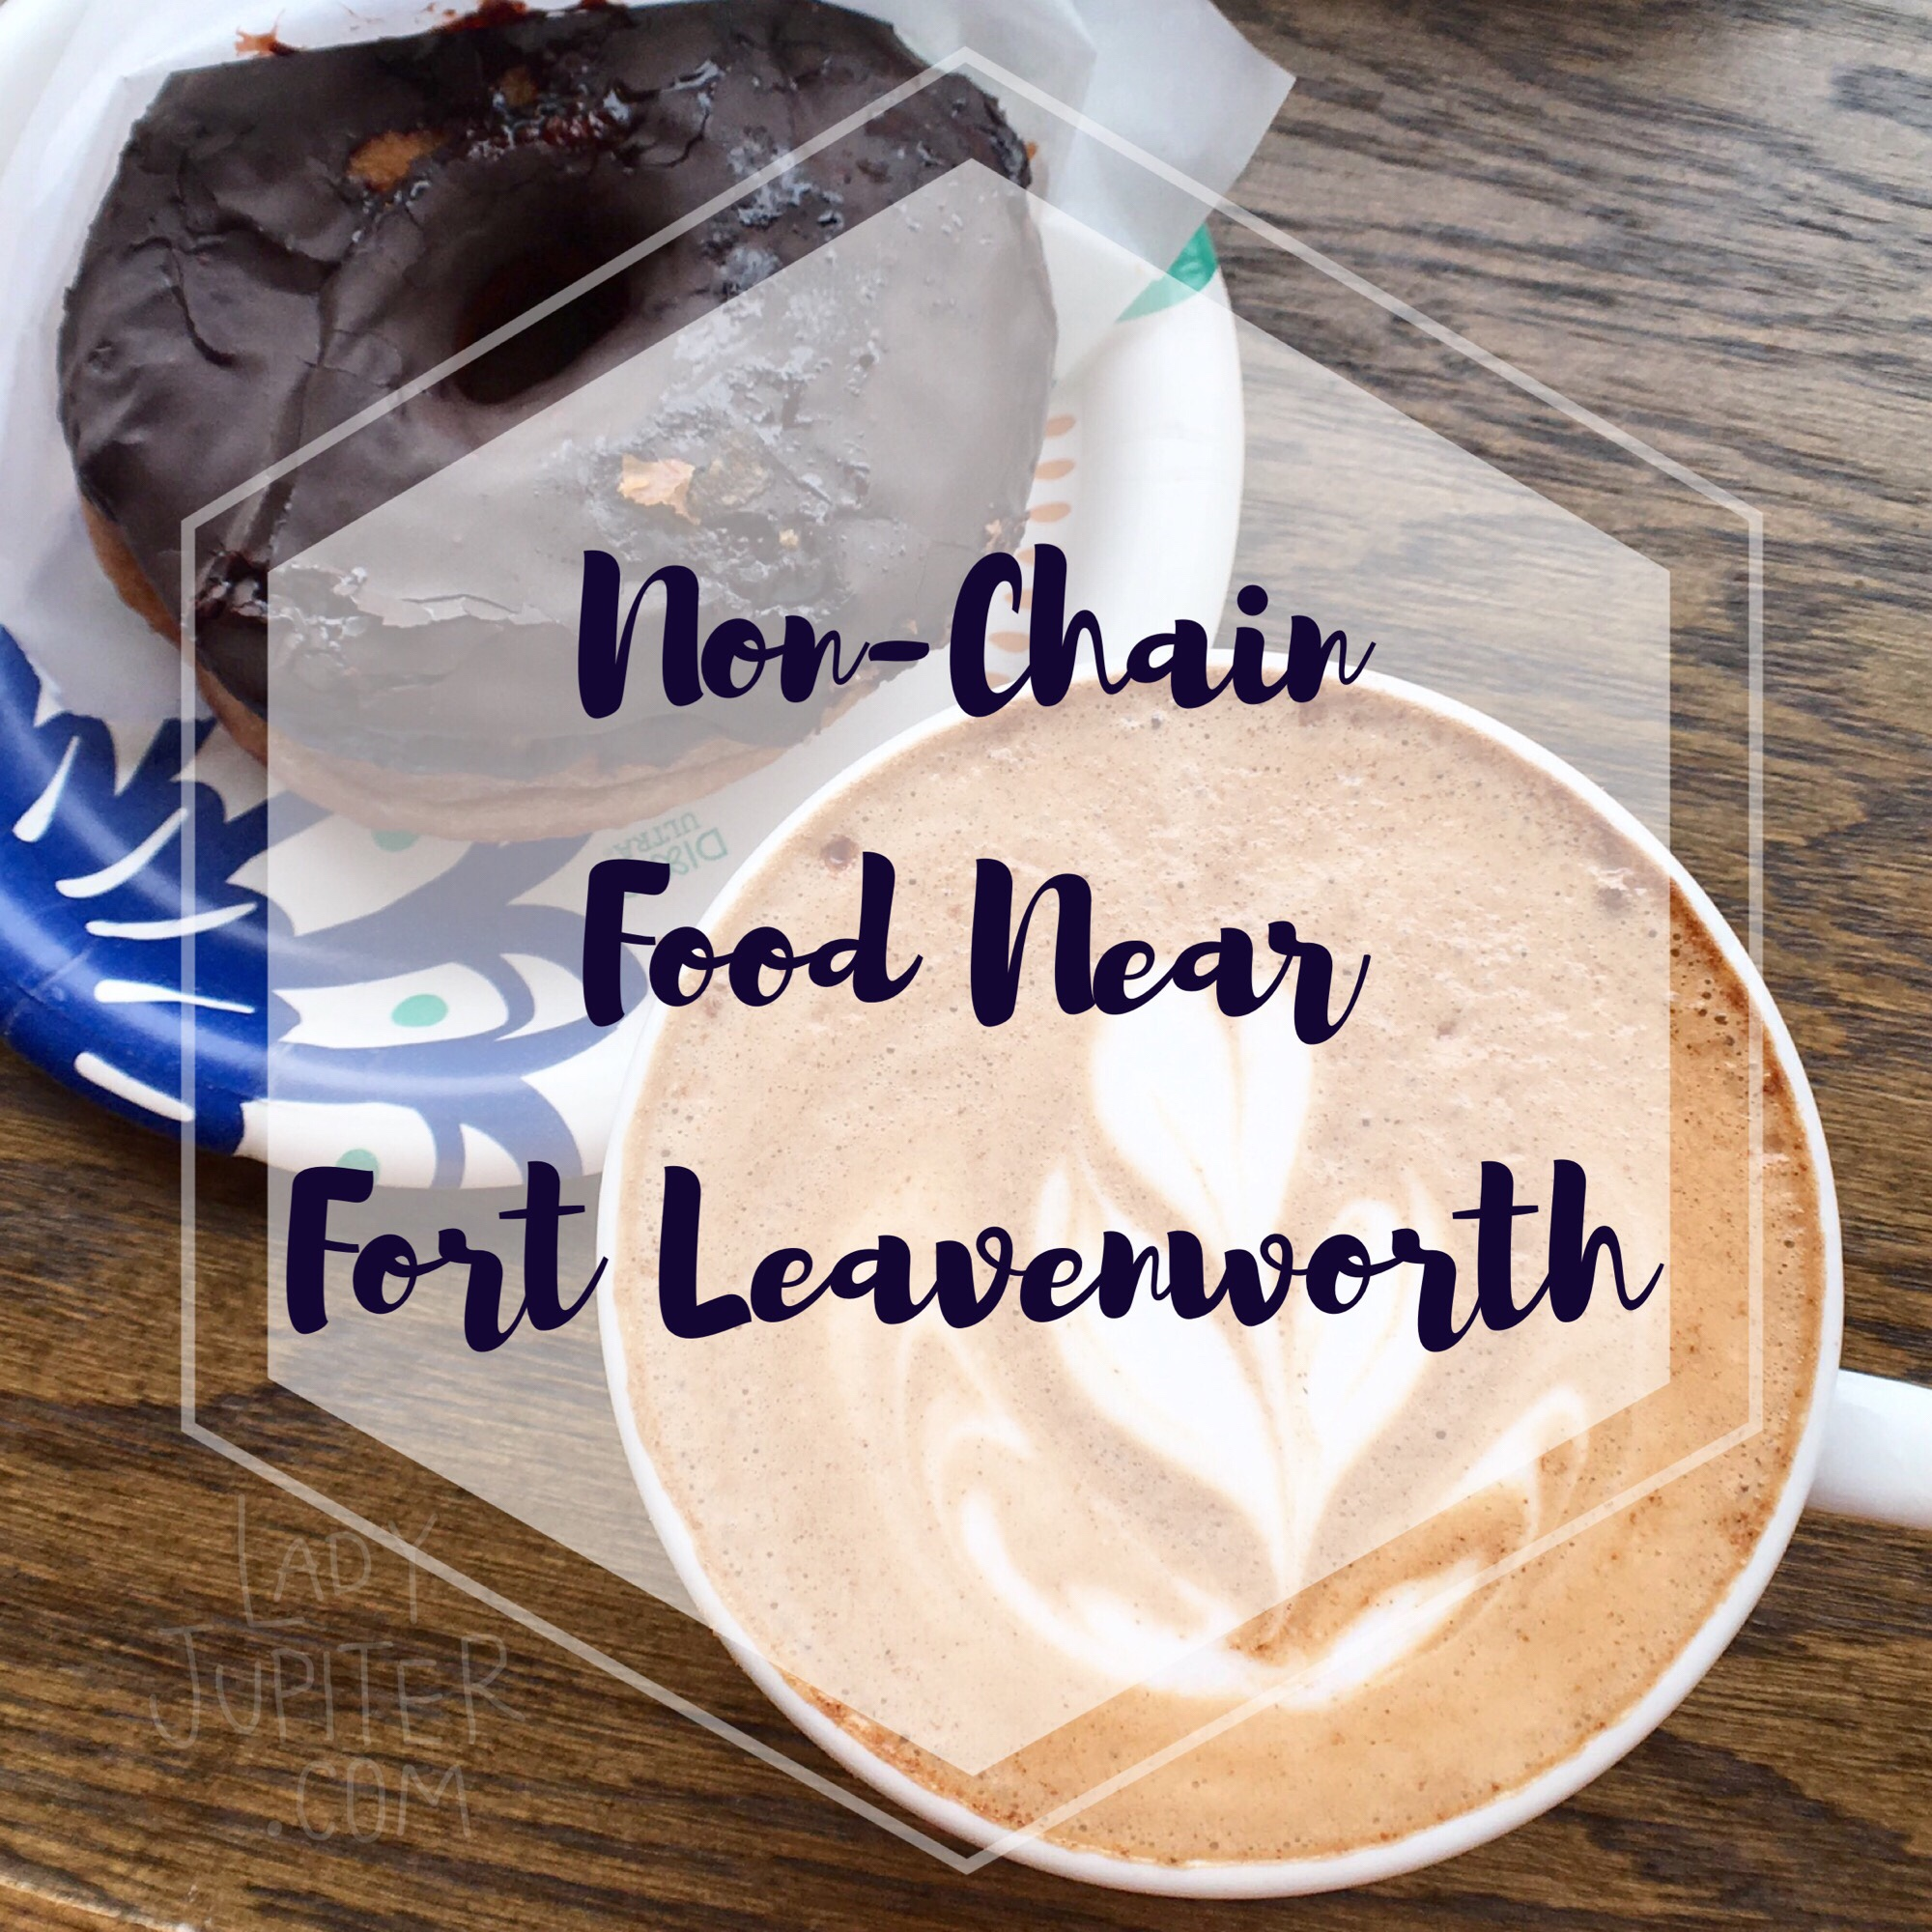 Coming to Fort Leavenworth and tired of eating in chain restaurants? I know that feeling! Here are some non-chains for you to check out #fortleavenworth #milbogger #latte